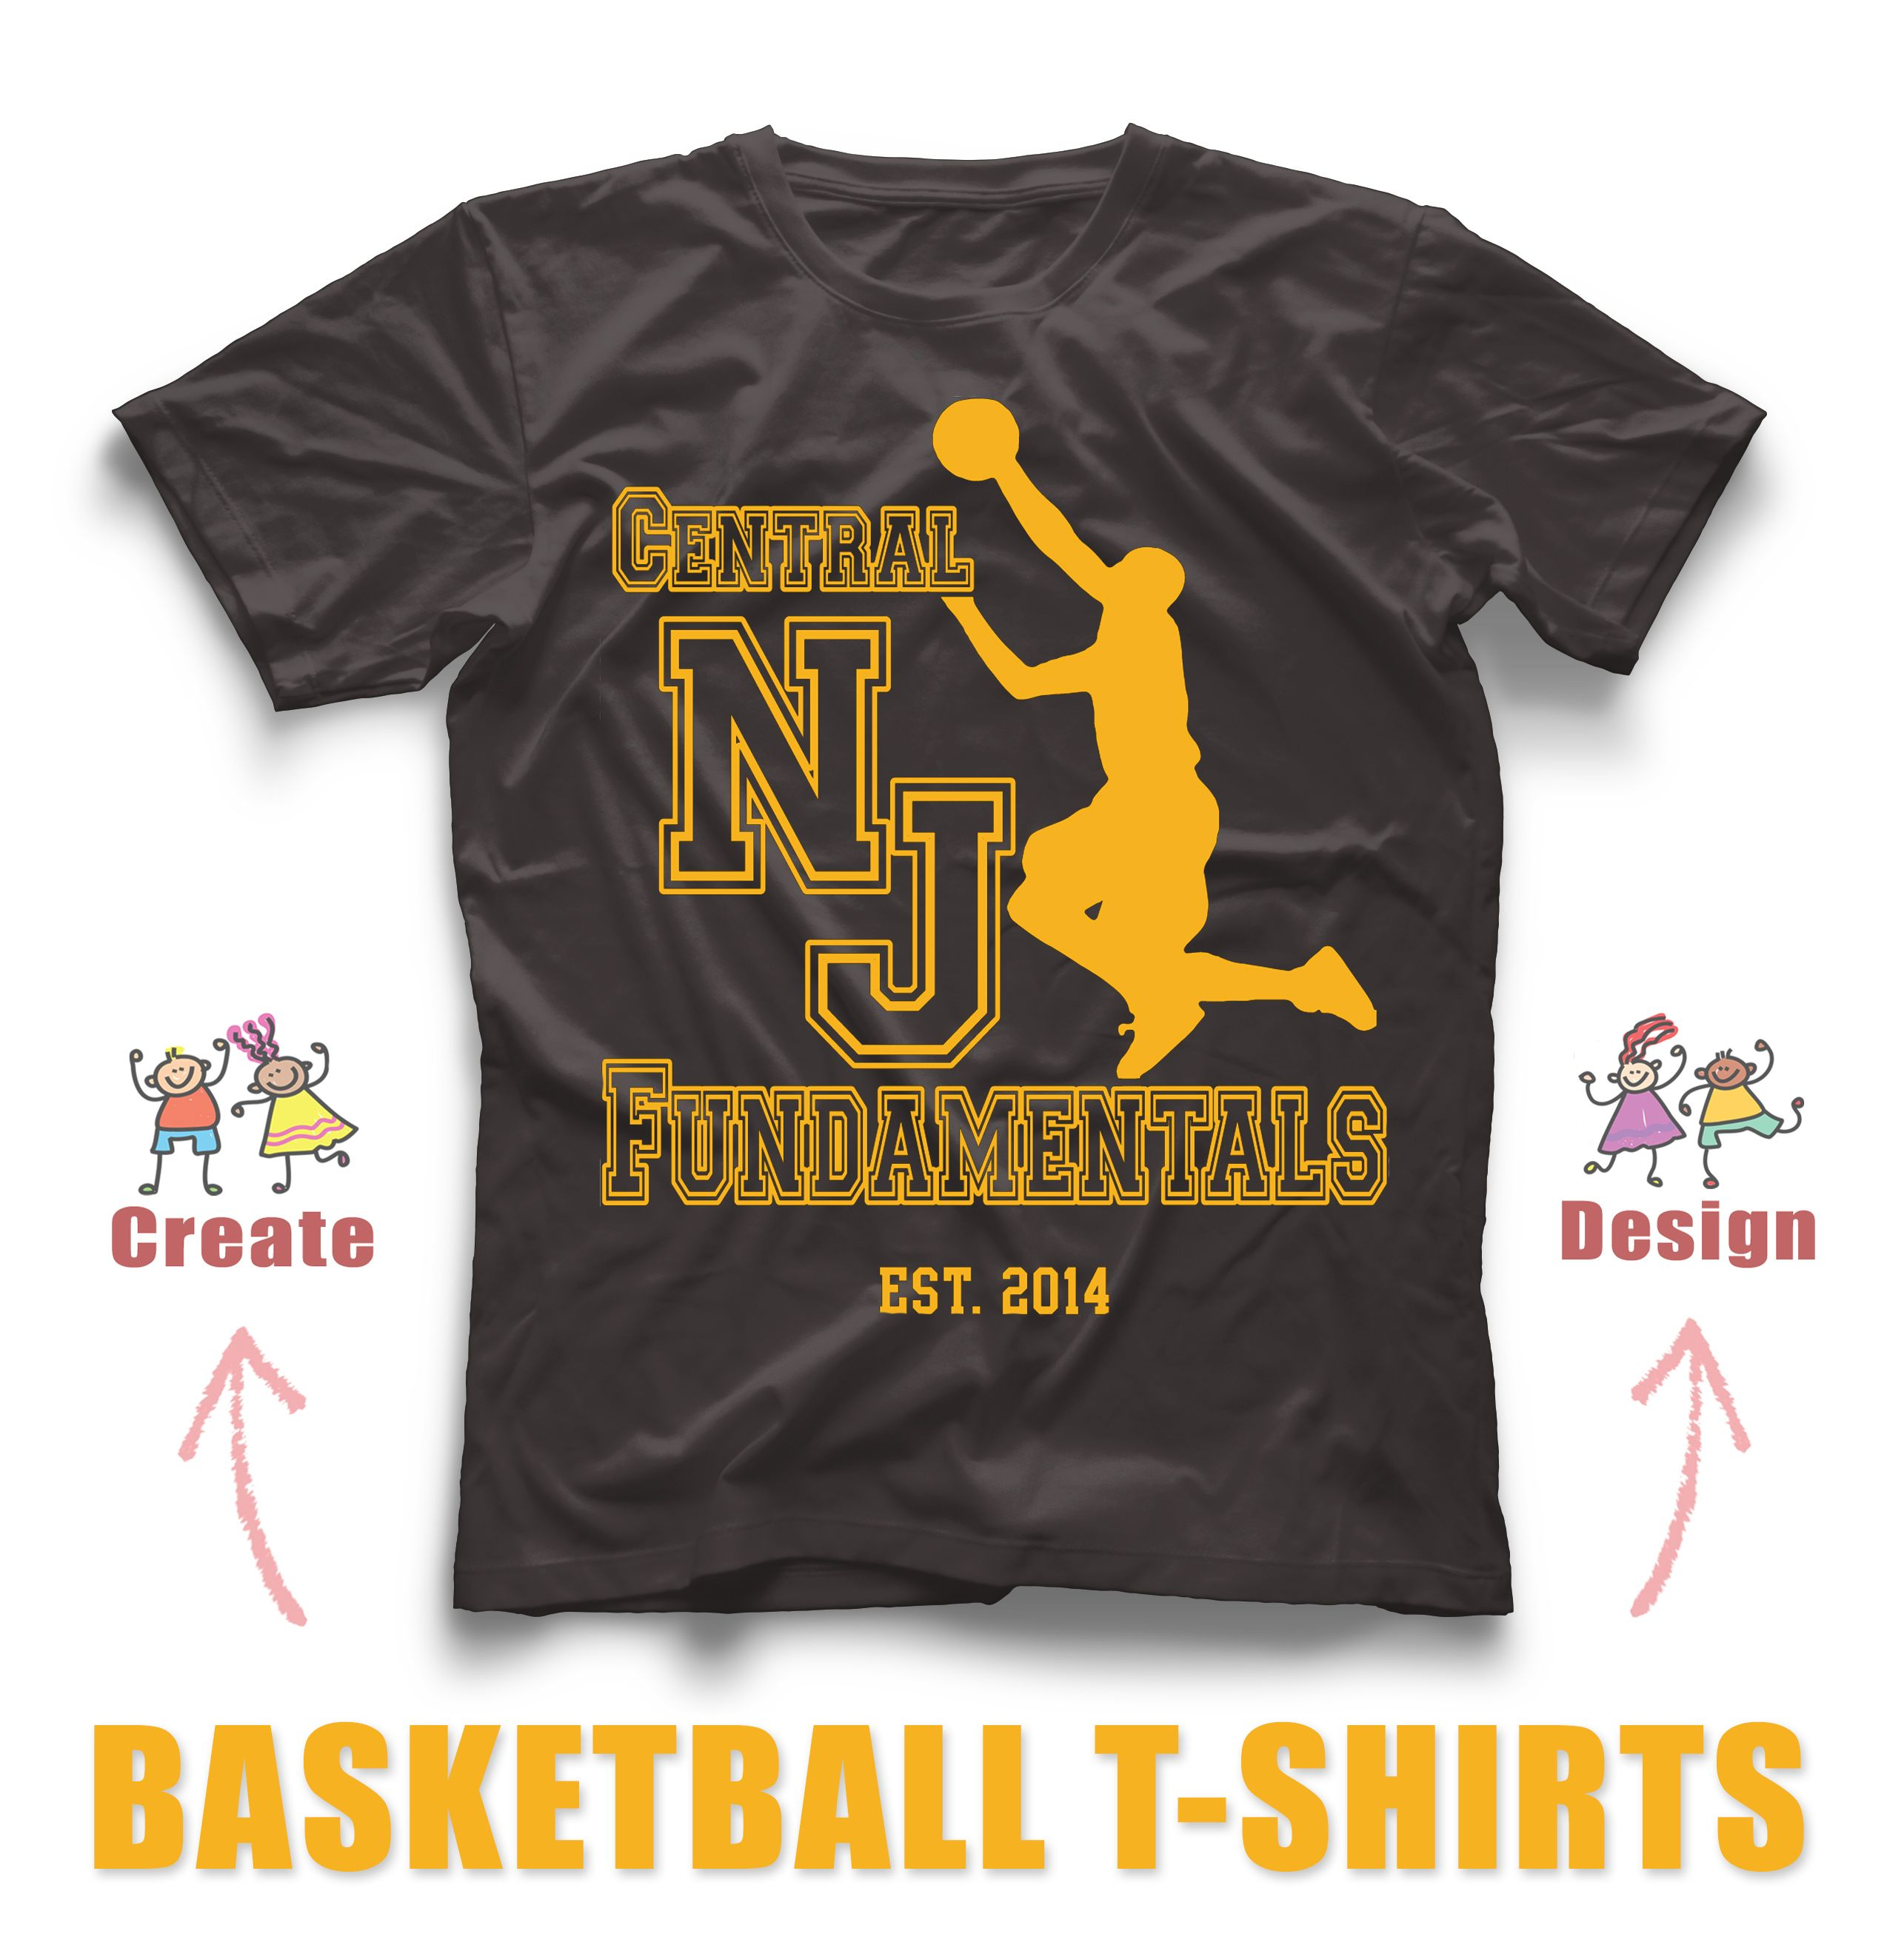 awesome custom basketball t shirt design created in our online design studio create yours - T Shirt Design Ideas Pinterest